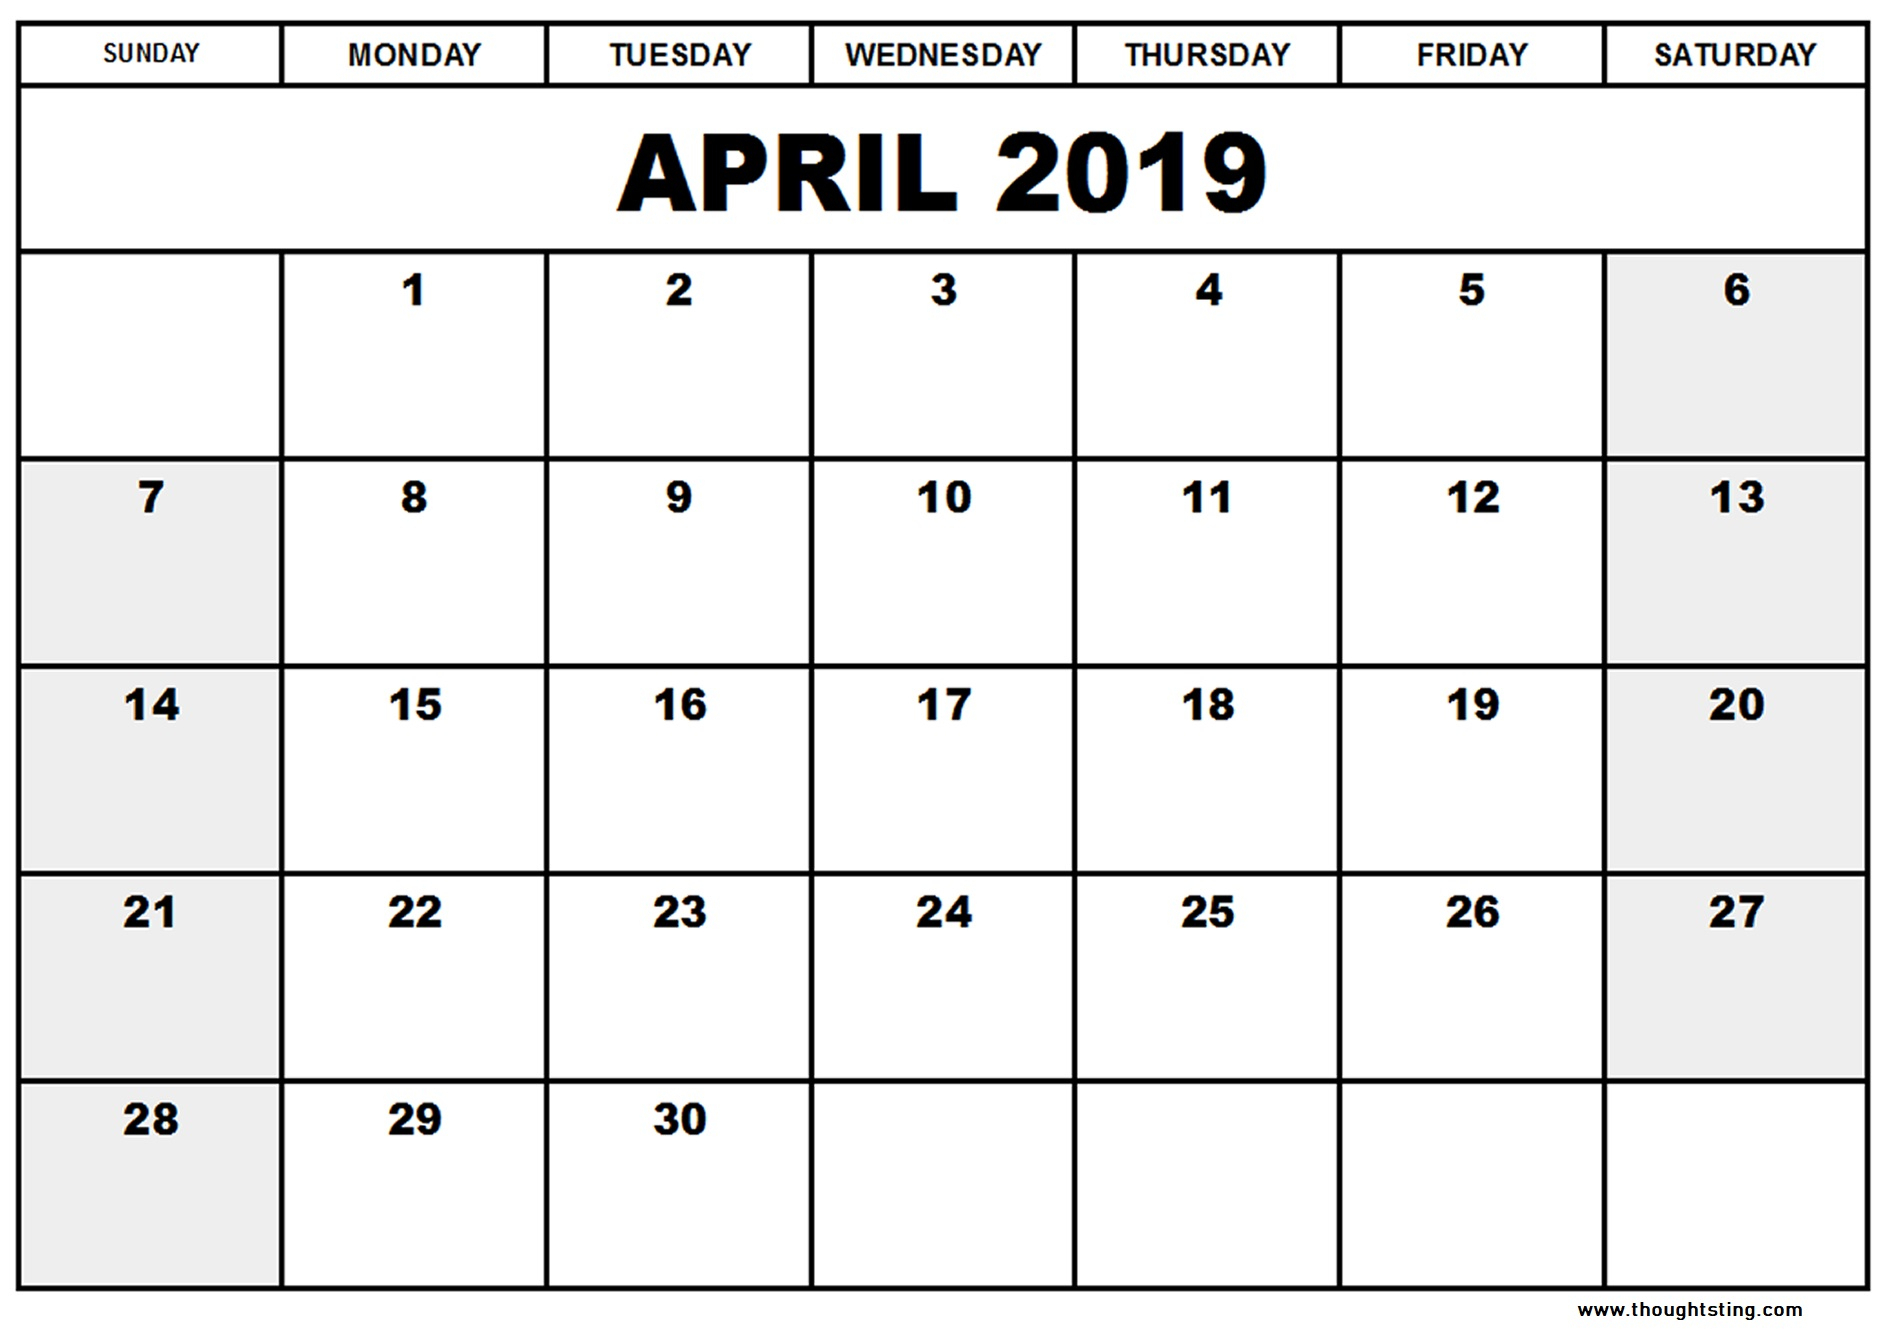 April 2019 Calendar Template Word, Excel, Pdf - Free Printable with Pretty Calendar Template Printable March